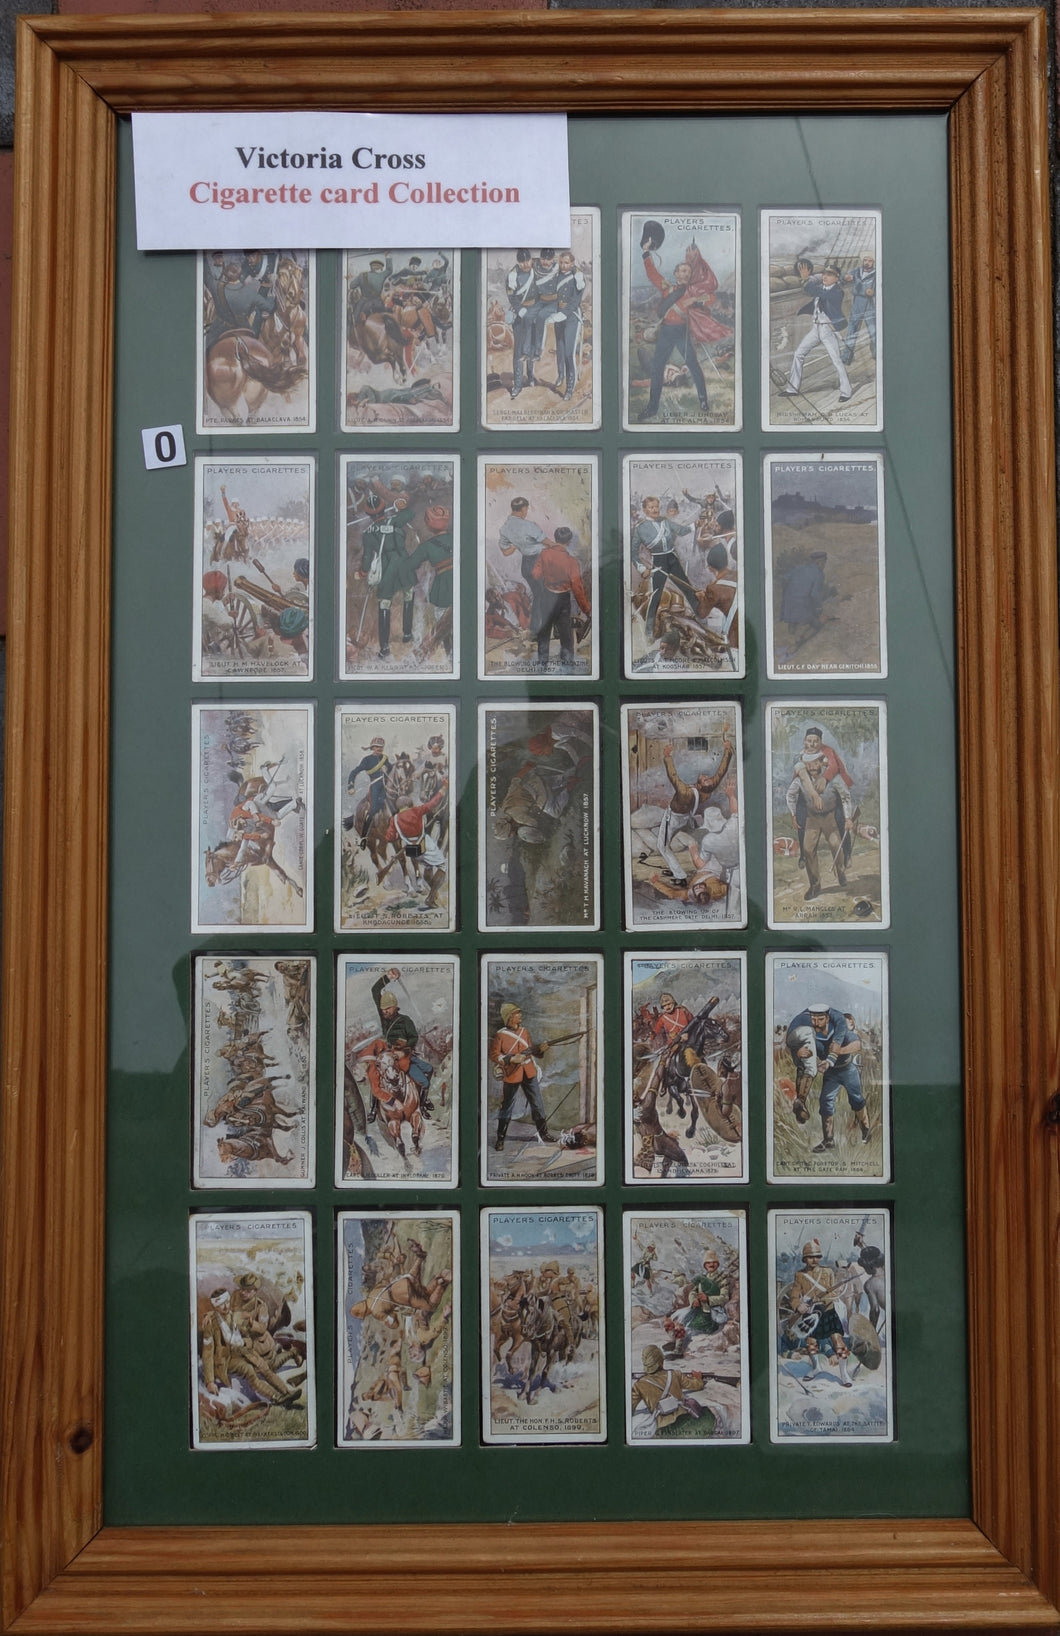 NICELY MOUNTED CIGARETTE CARD DISPLAY VC HEROES